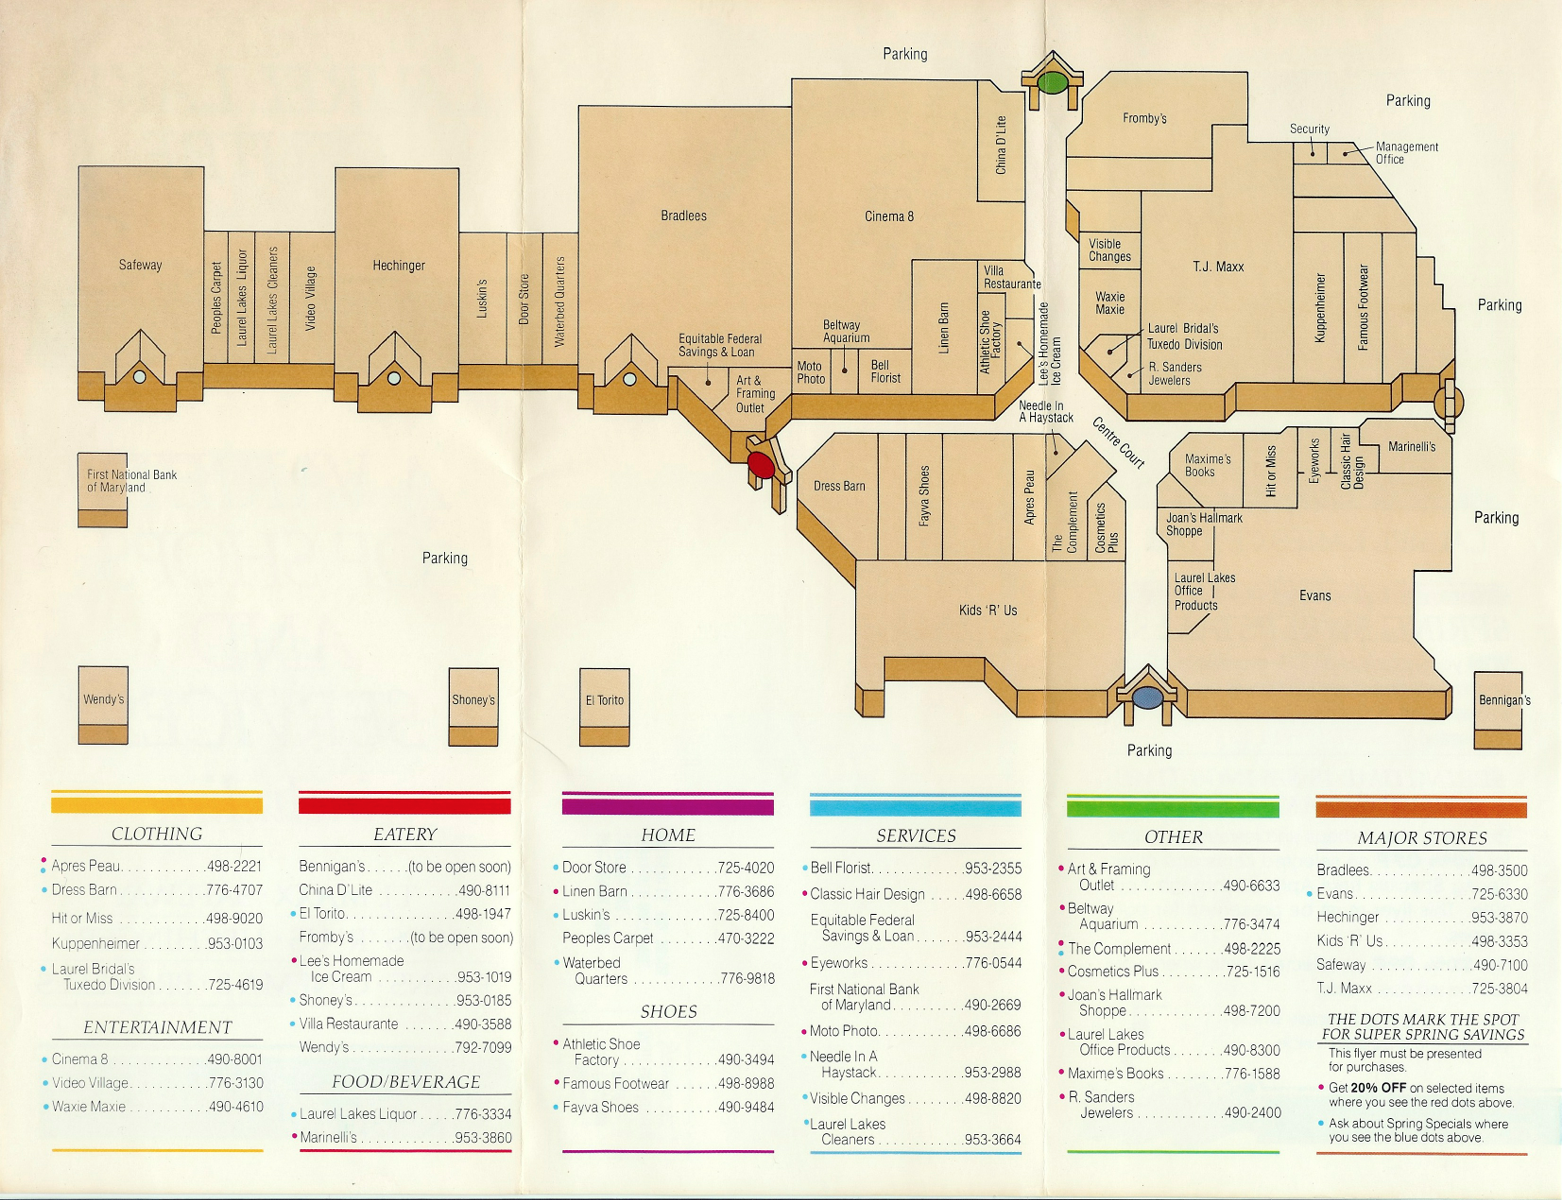 vaughan mills mall directory » Full HD MAPS Locations - Another ...